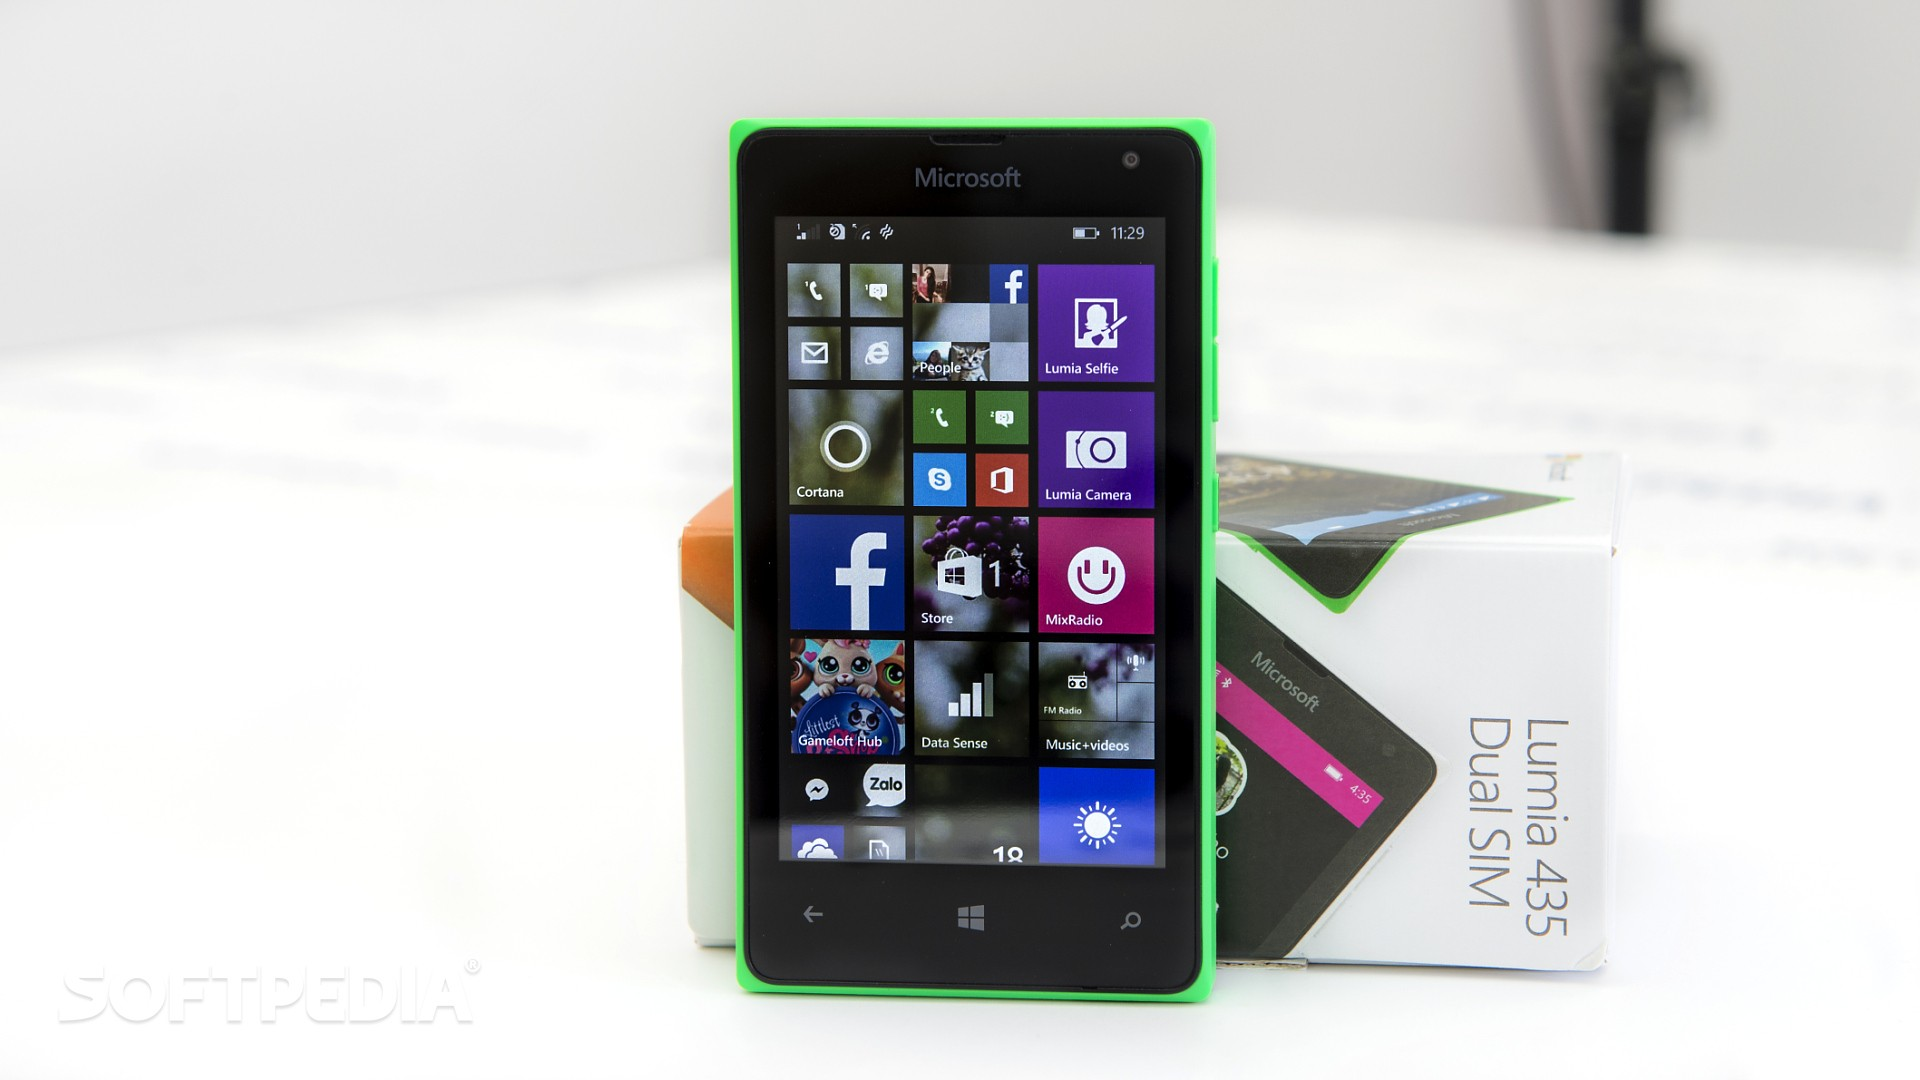 Worth Having A Cell Phone with Windows Phone?